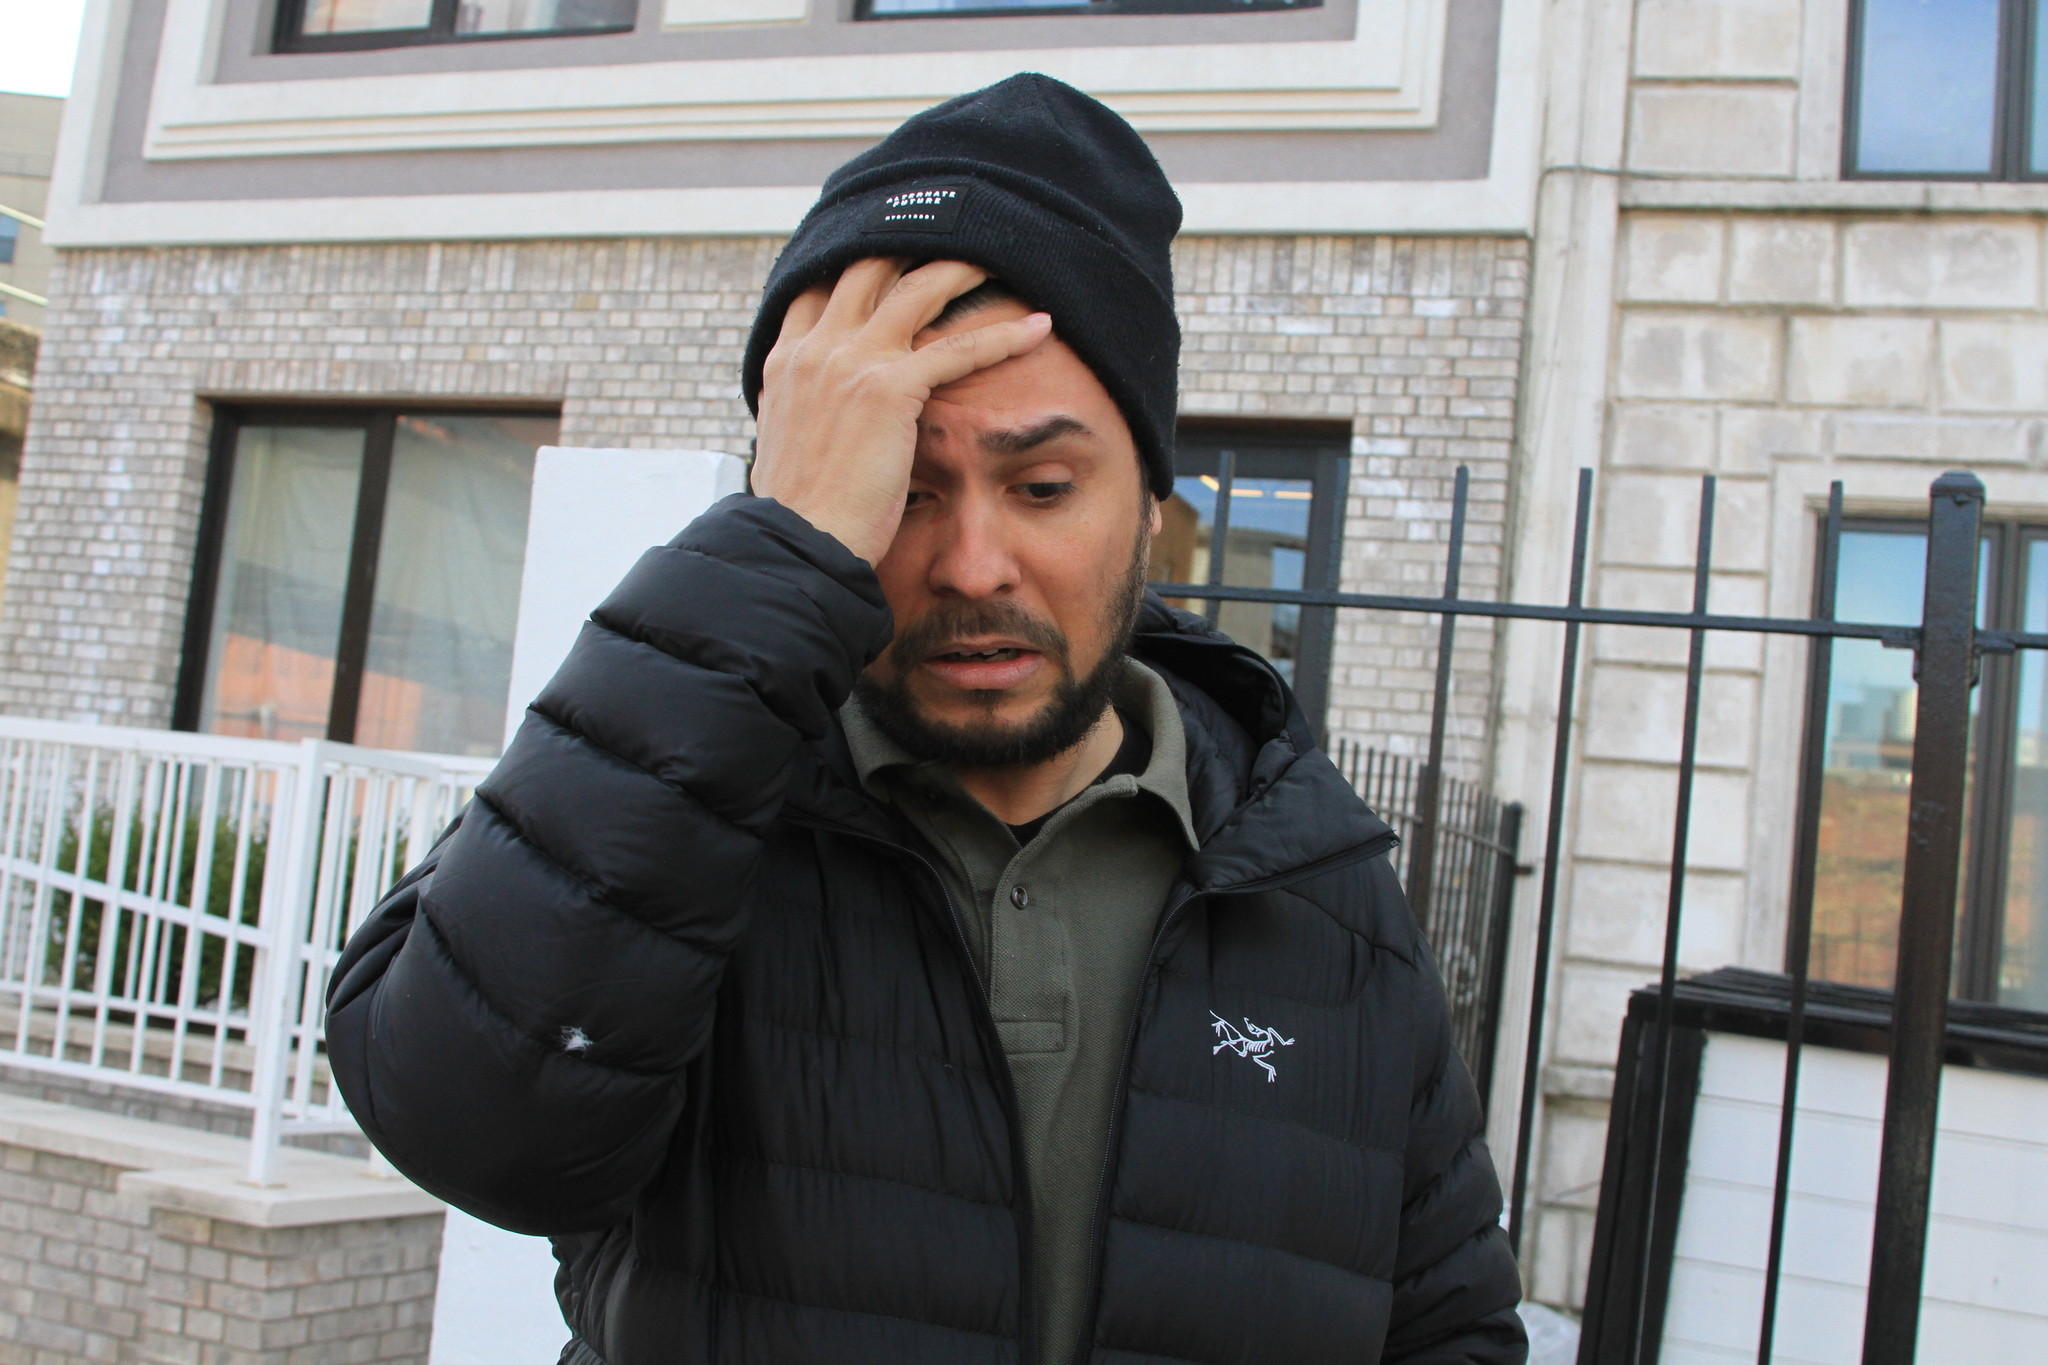 Man who sued NYPD twice over stop-and-frisks settles with NYC for $10,000